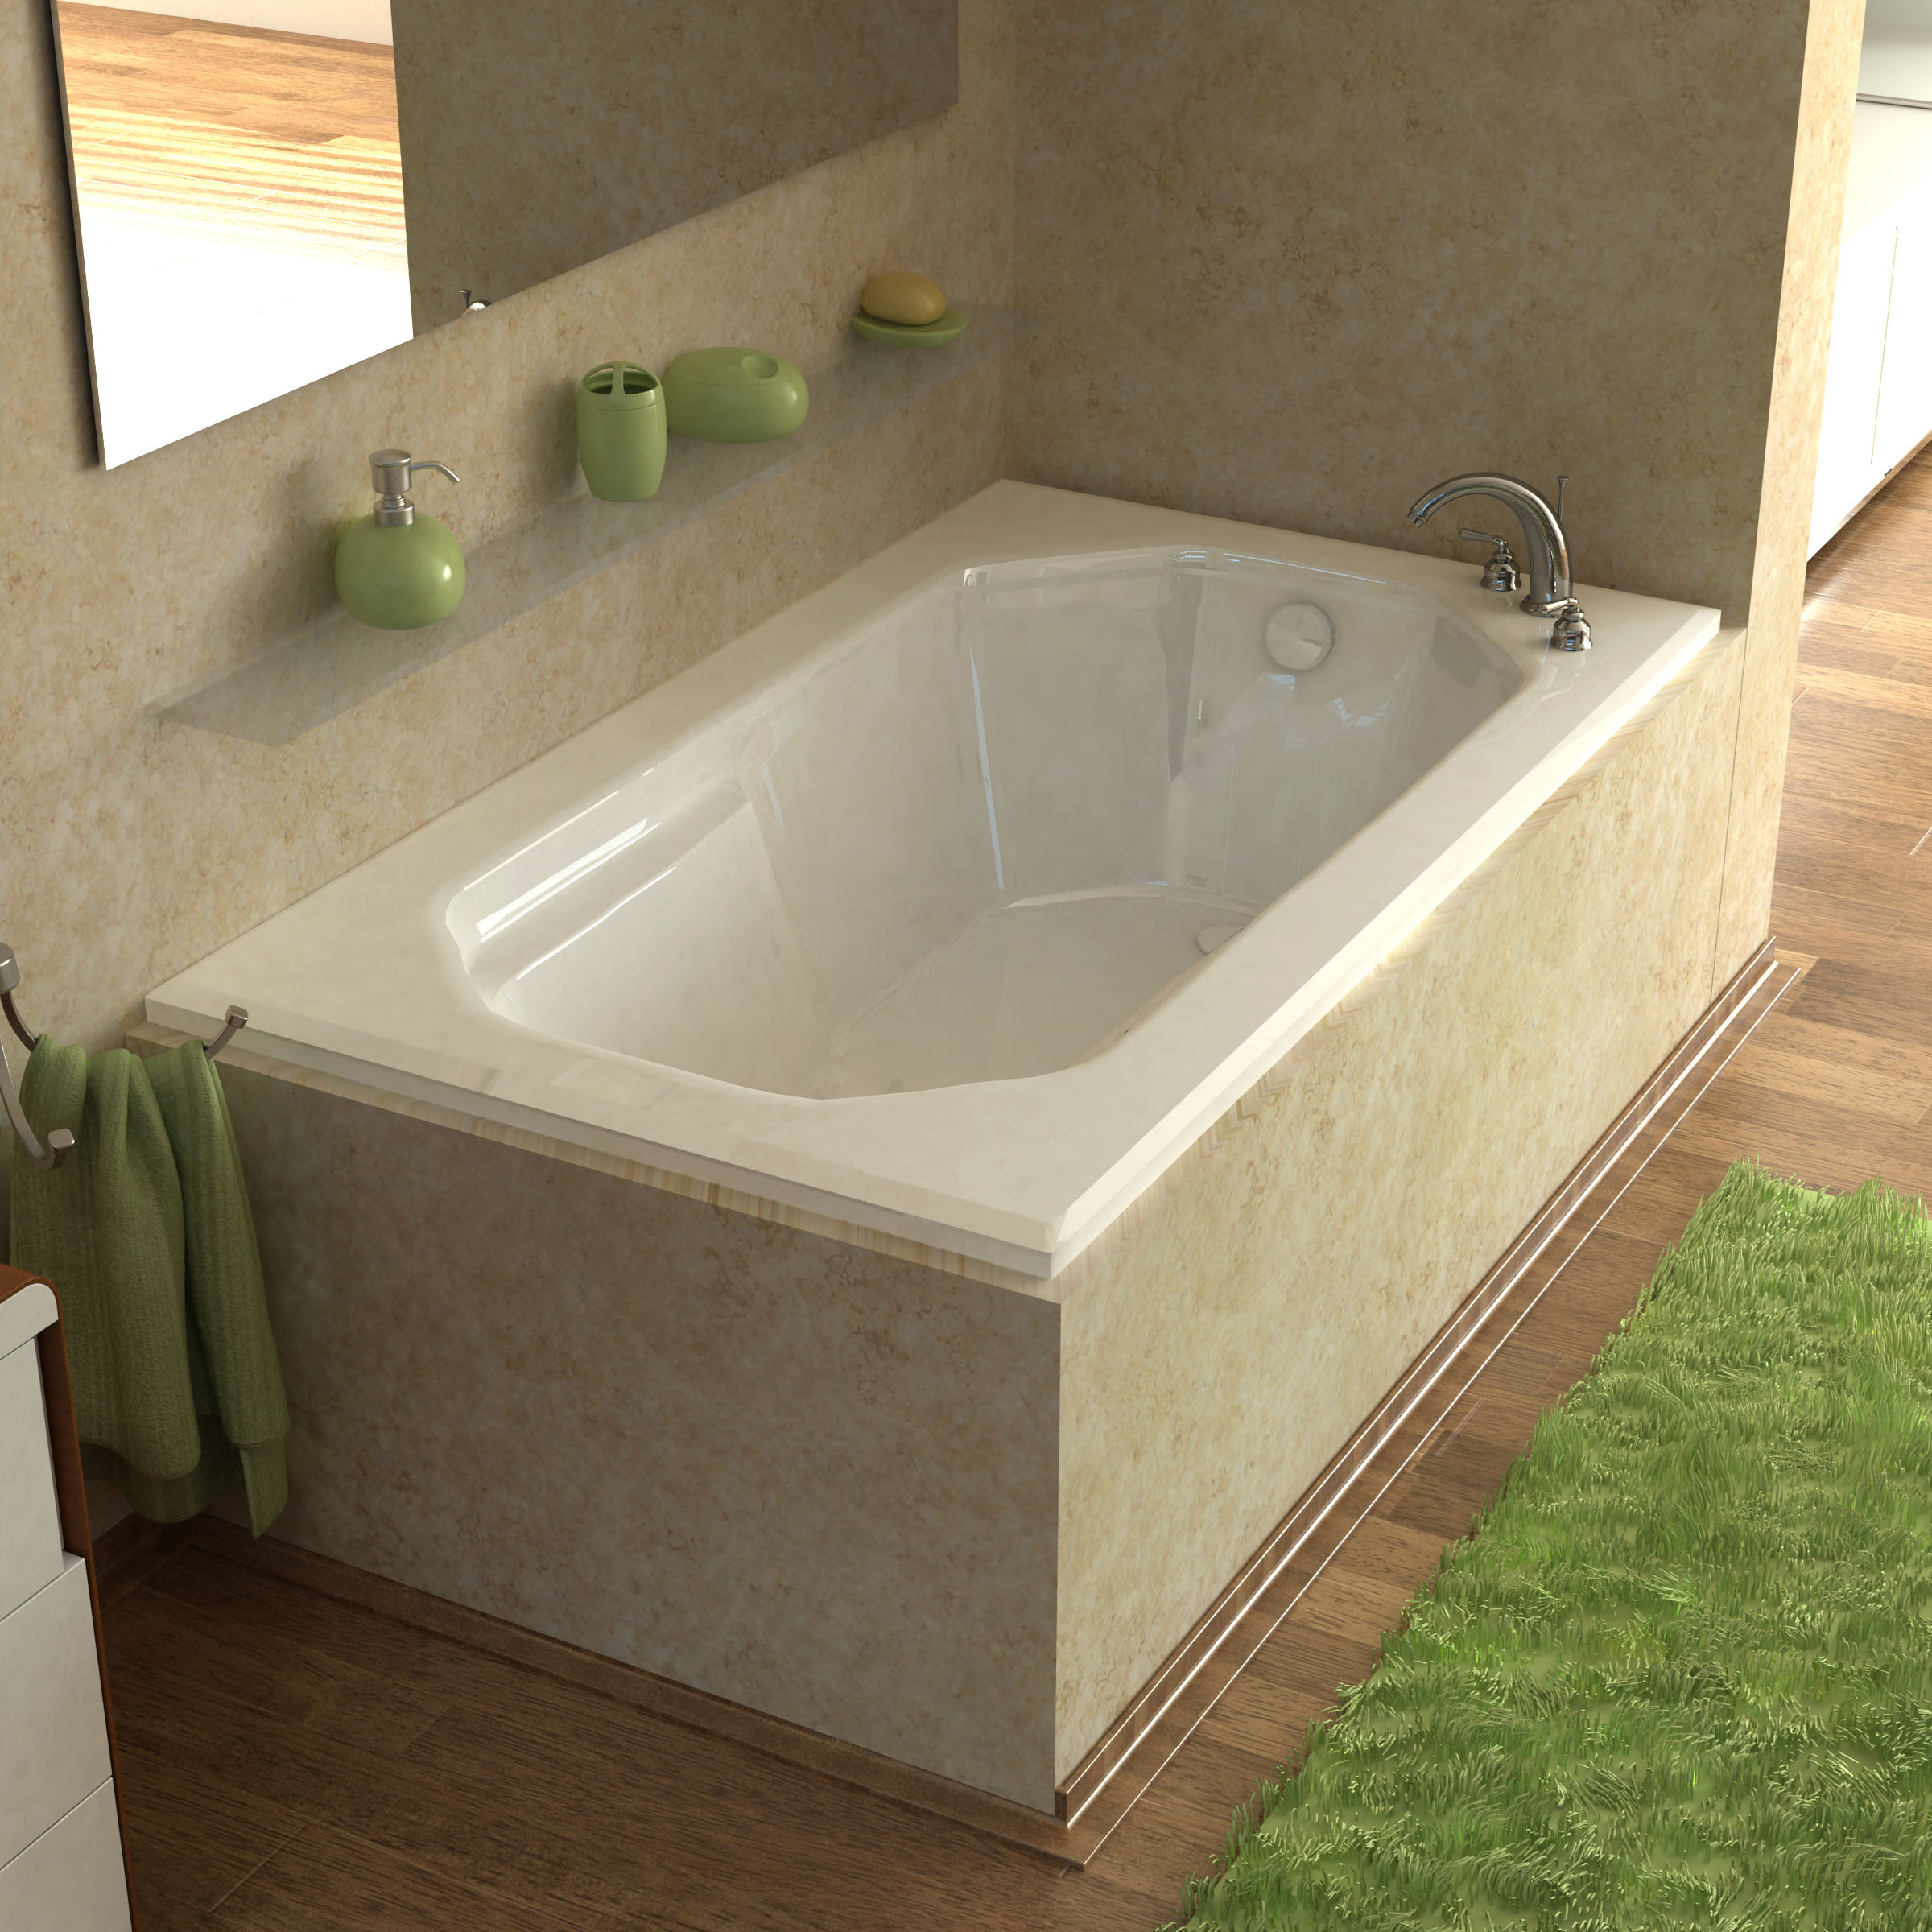 bath square tub fiberglass shower american manufacturers single jetted tubs combo jacuzzi whirlpool bathtubs whirl bathtub standard